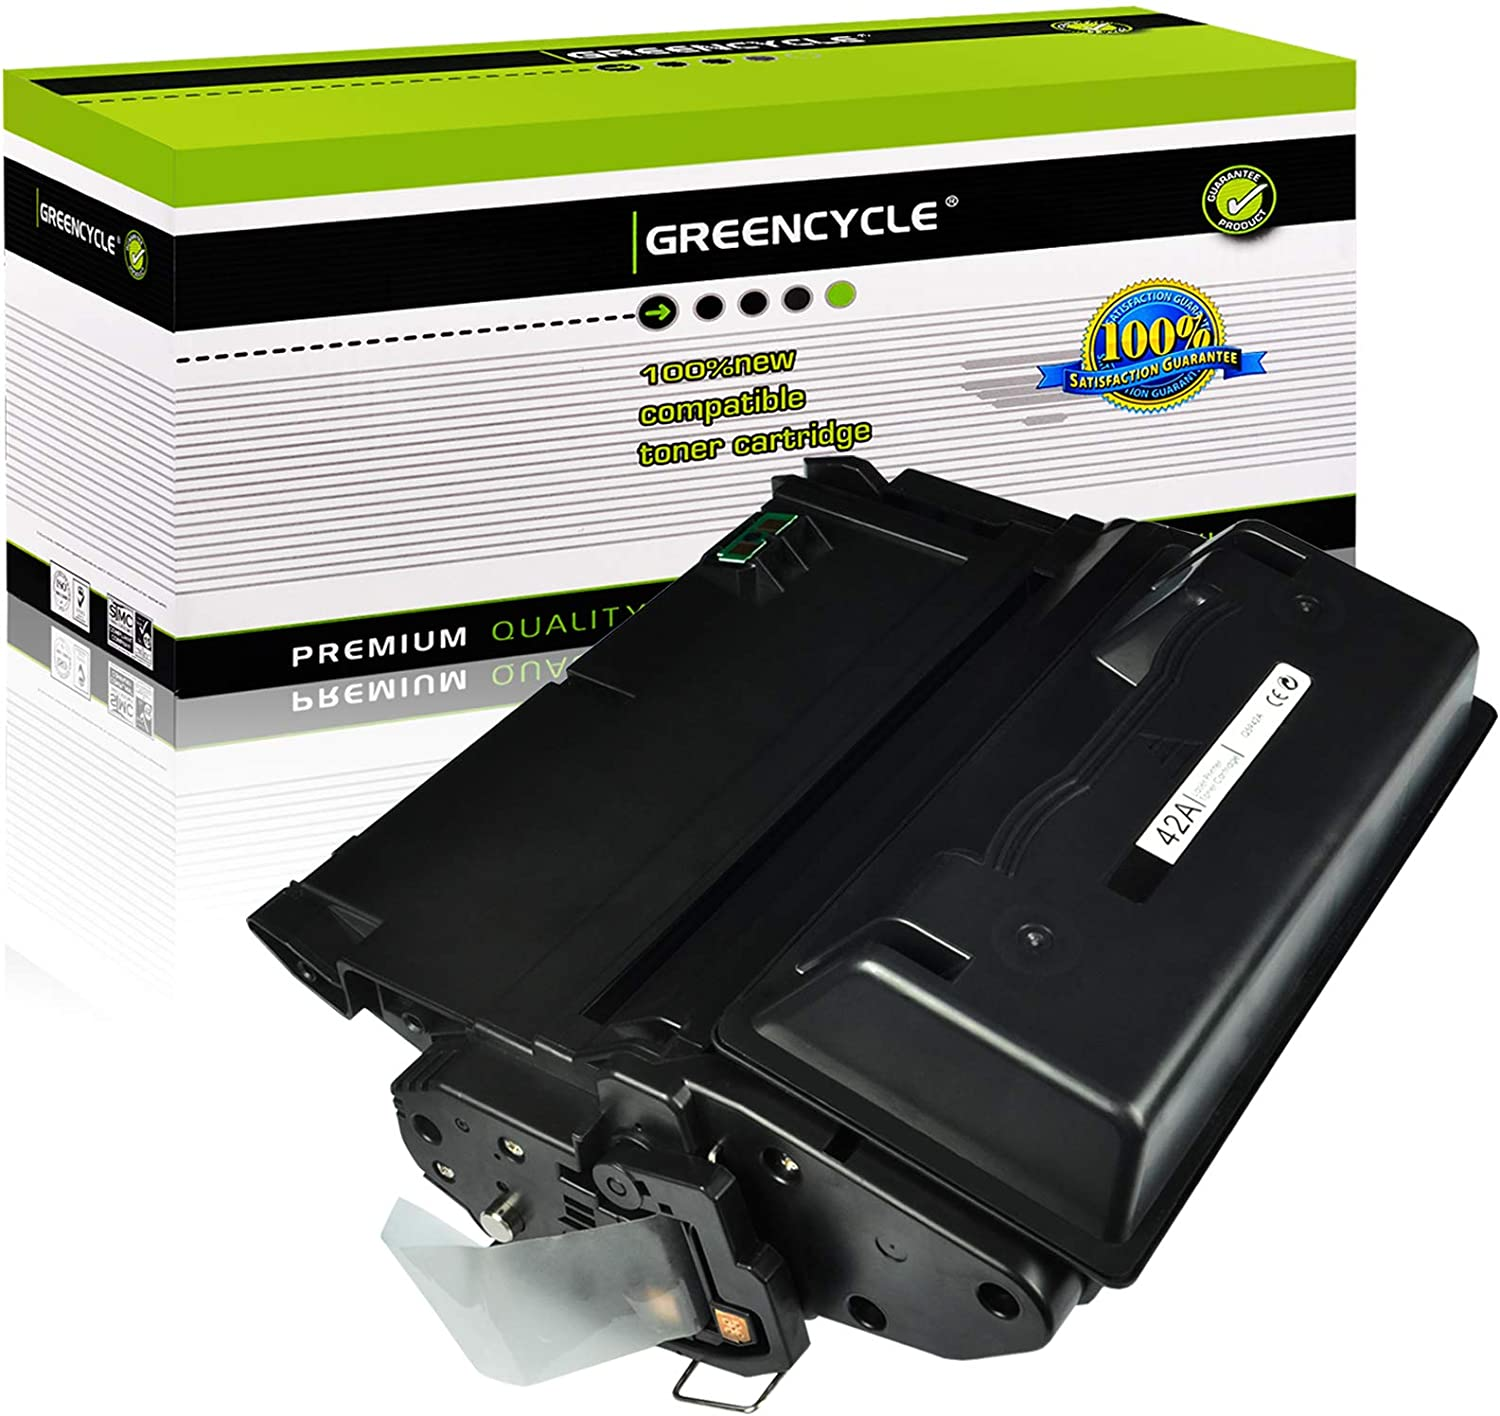 GREENCYCLE 1 PK 10,000 Pages Compatible Black Toner Cartridge Replacement for HP Q5942A Q5942 42A Used for Laserjet 4200 4240 4250 4250TN 4250N 4250DTN 4300 4350 4345MFP 4350N 4350TN 4350DTN Series